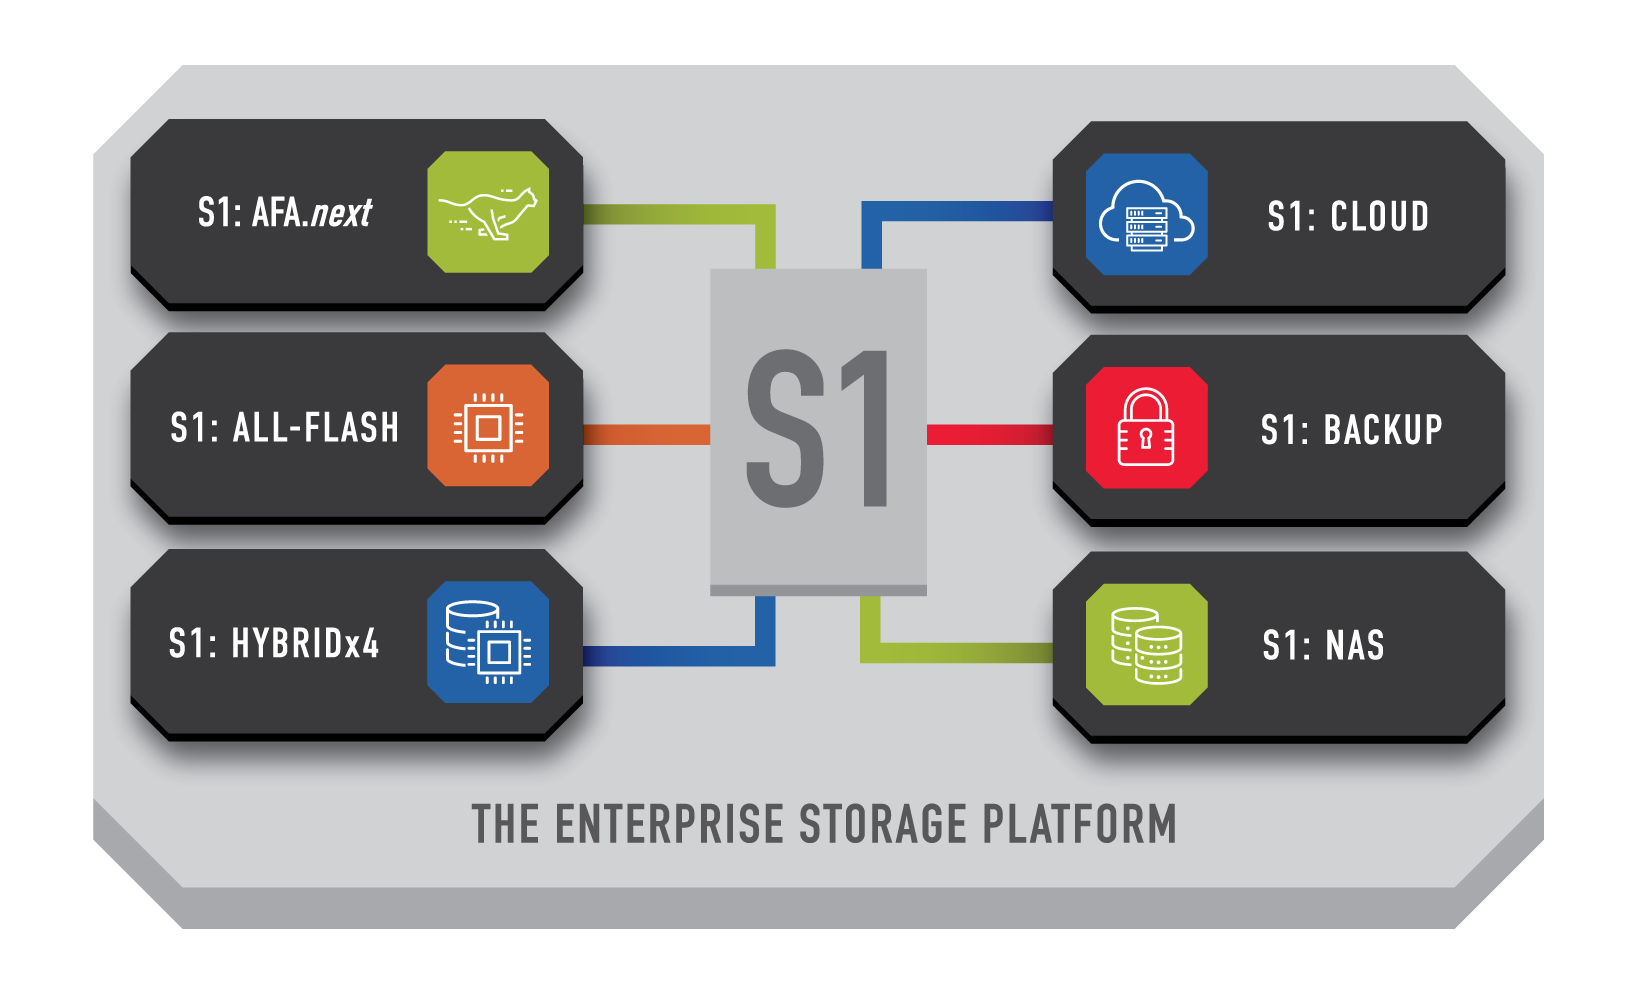 enterprise storage platform